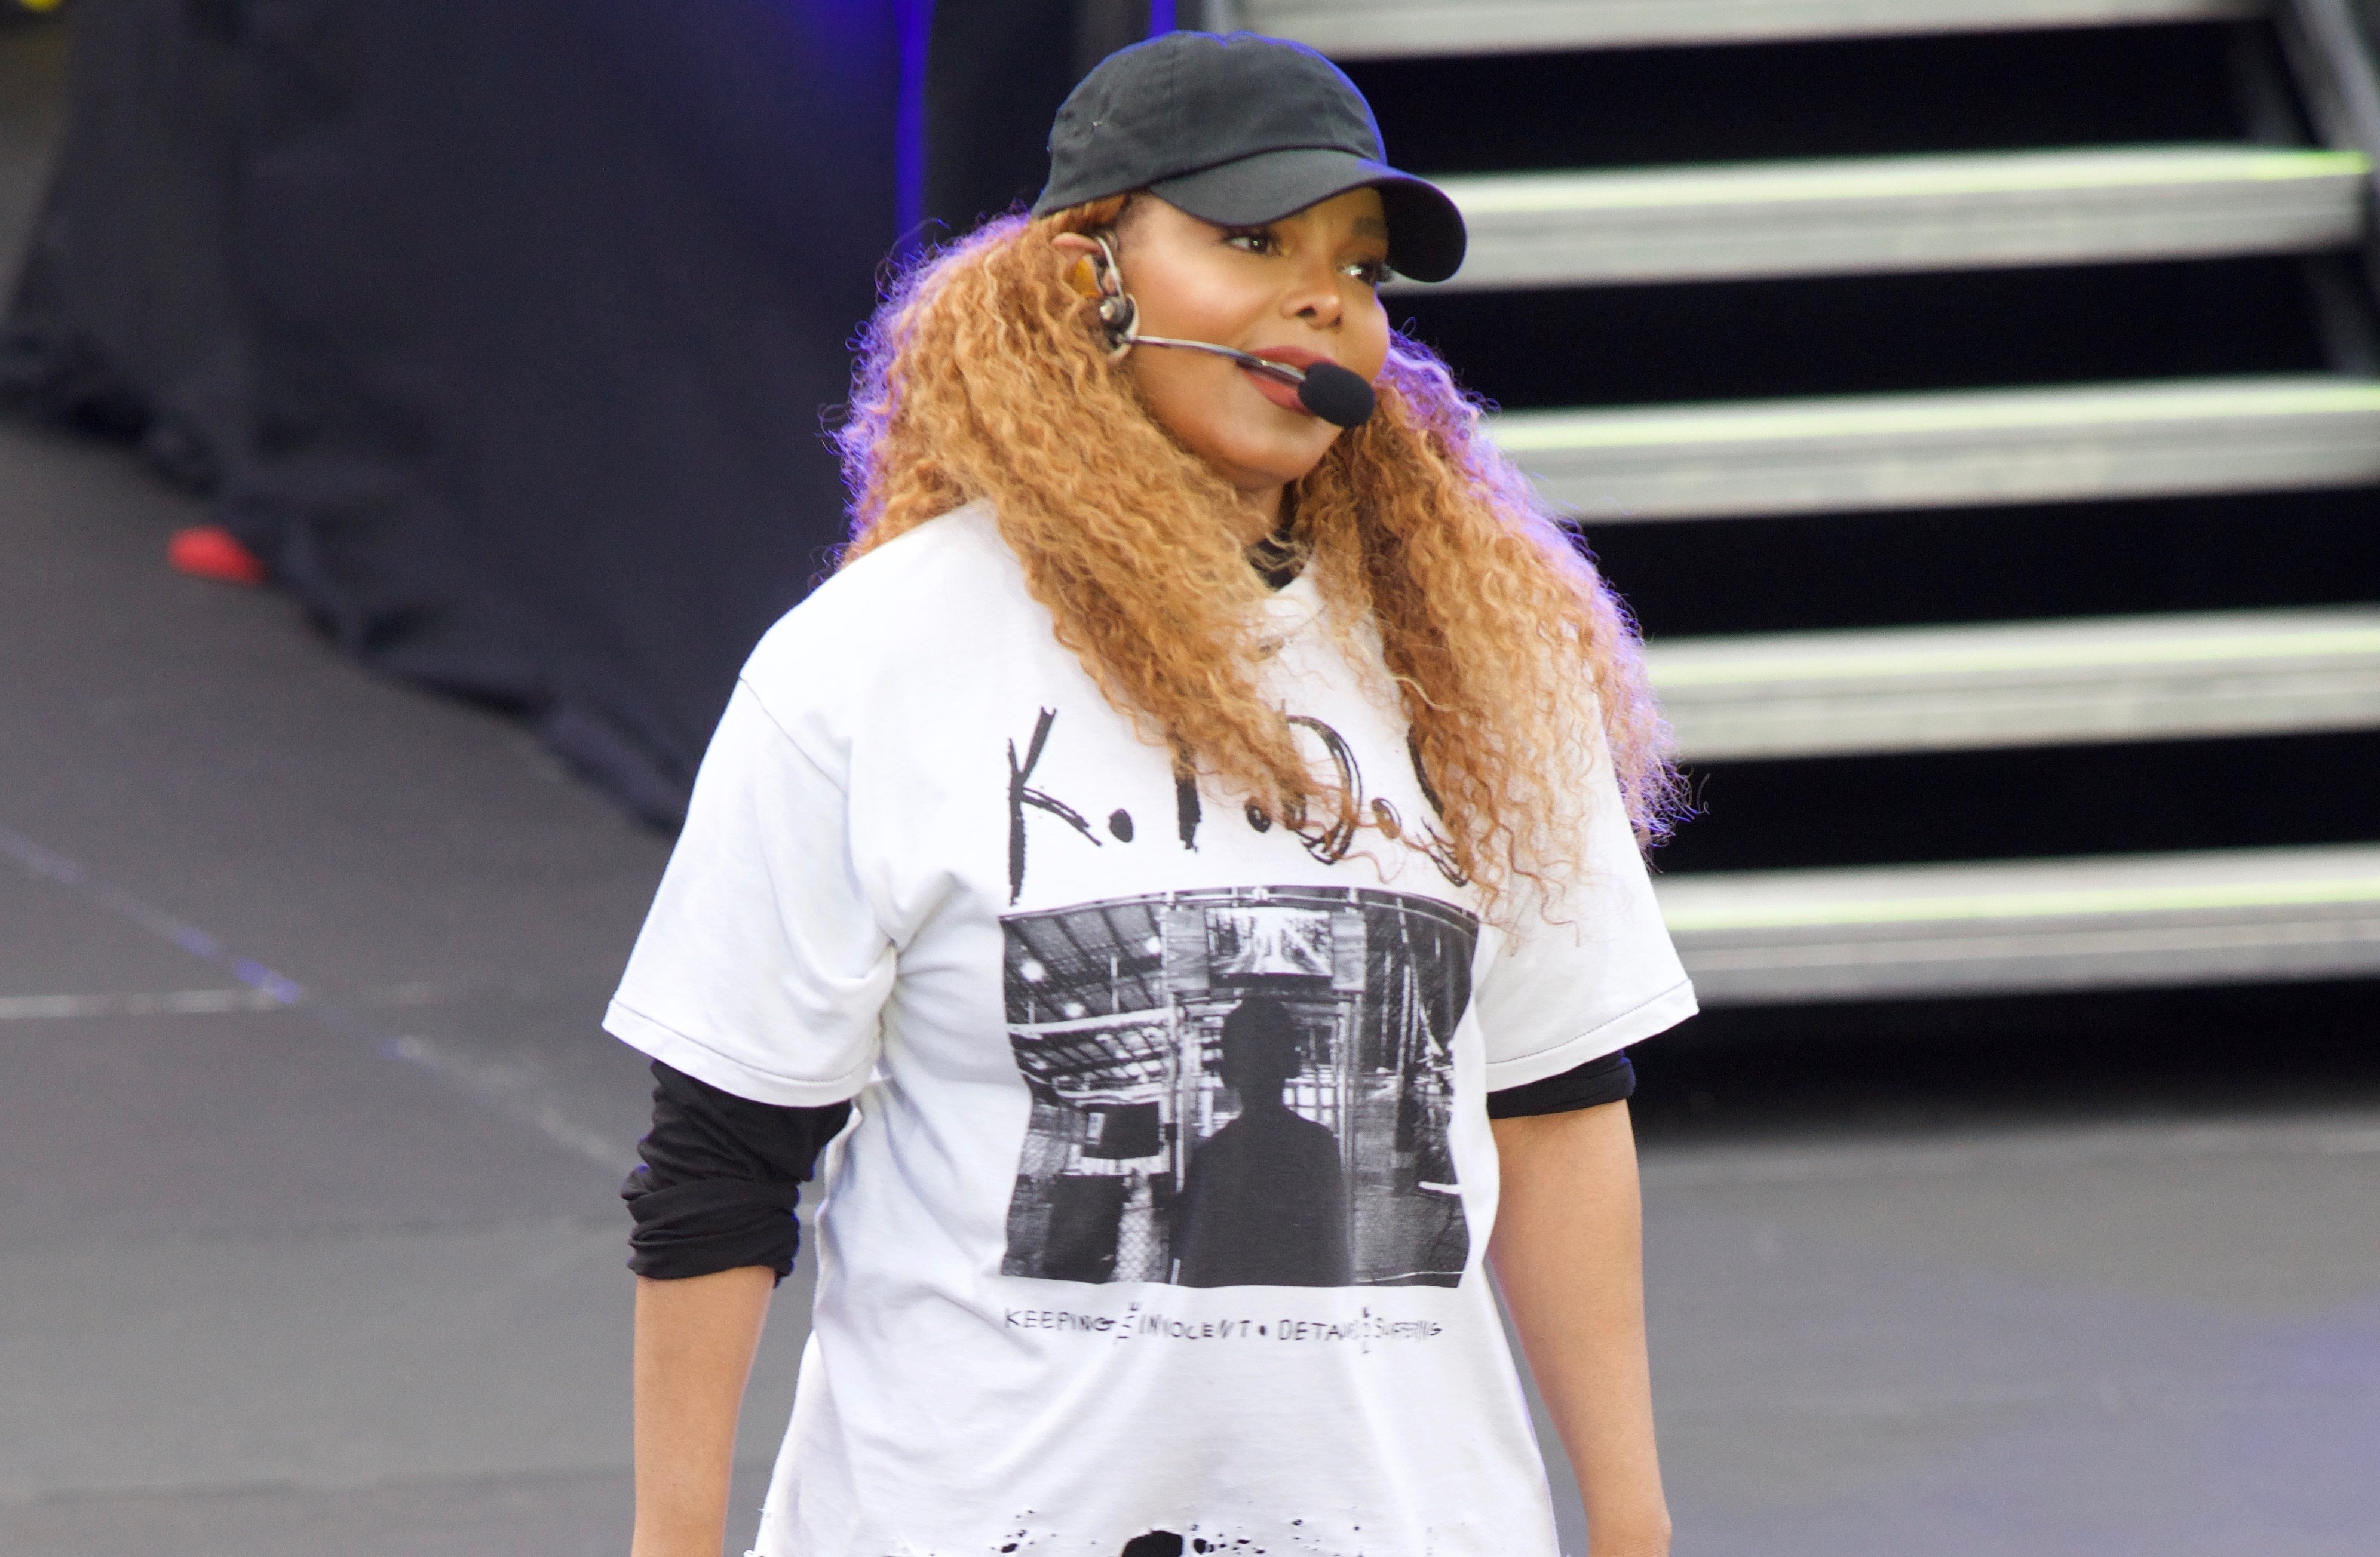 Janet Jackson, 50 Cent And Future Will Perform At Saudi Music Fest